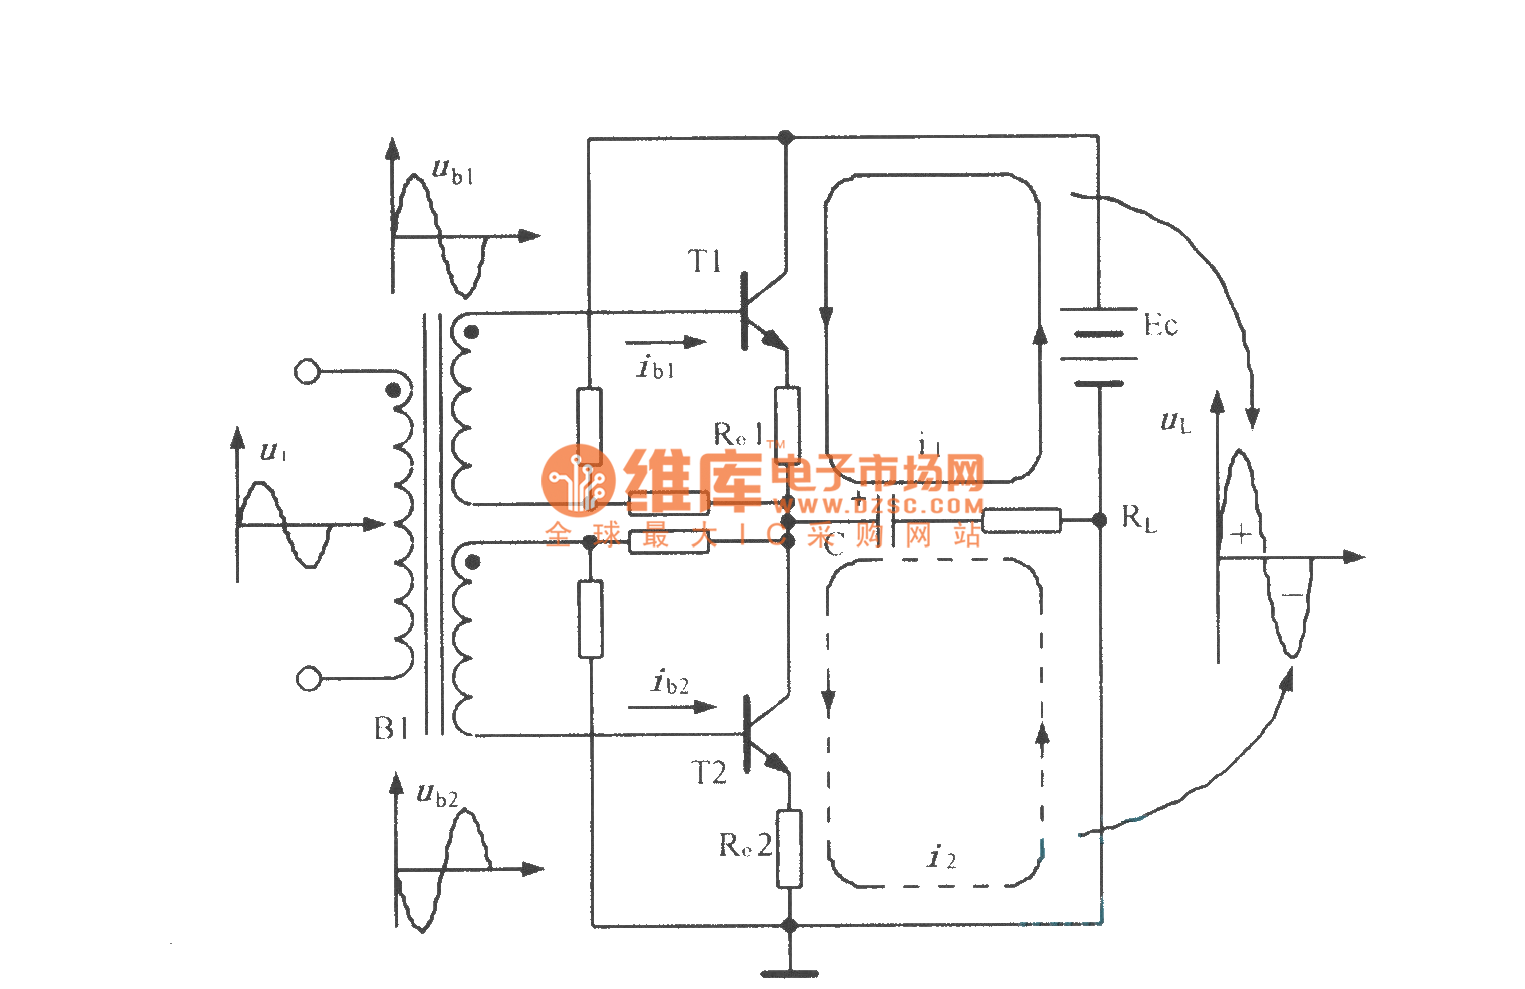 Otl Circuit With Input Transformer